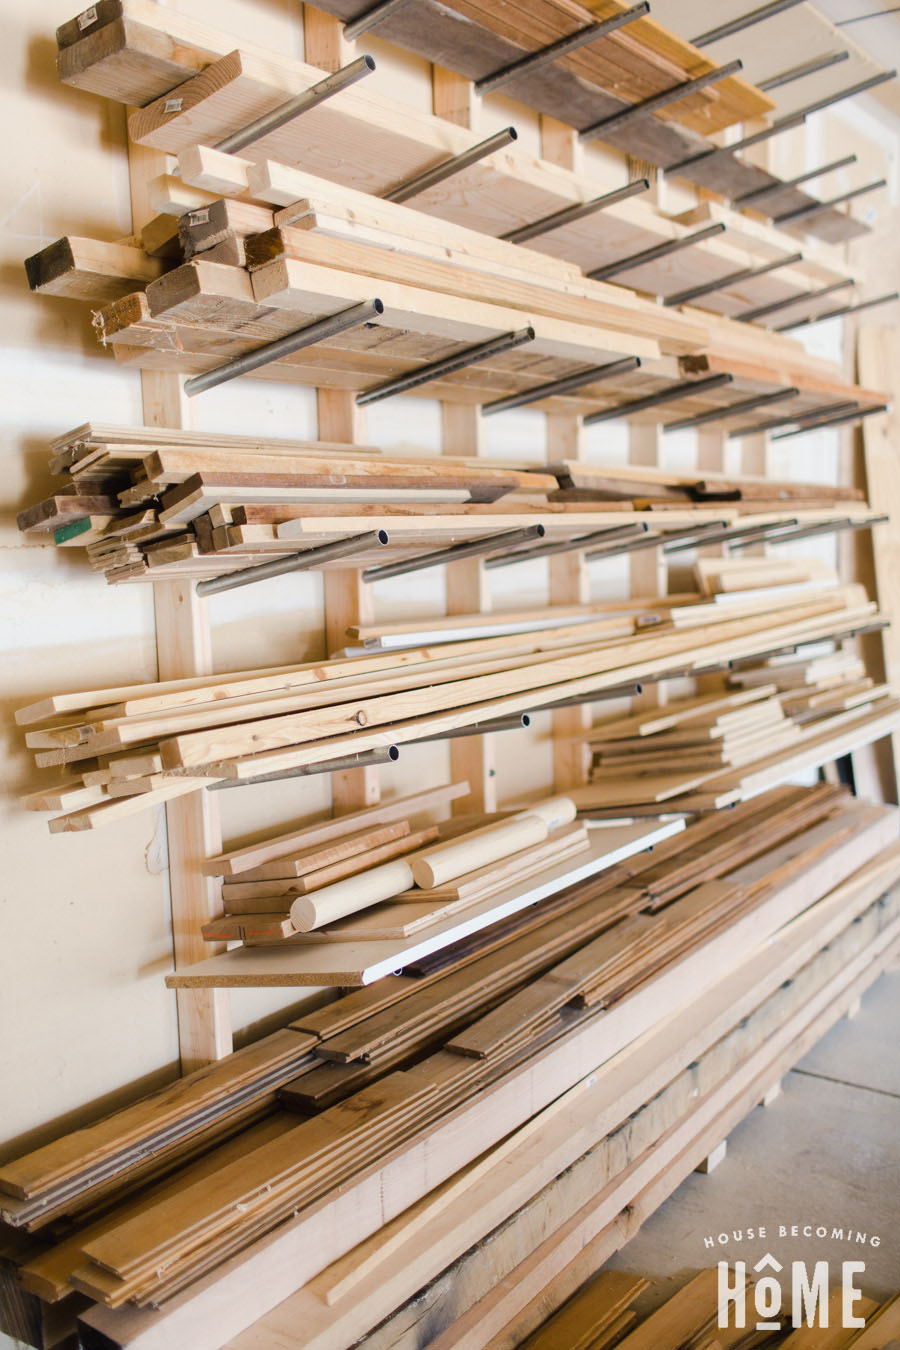 How To Build a Lumber Rack DIY Tips